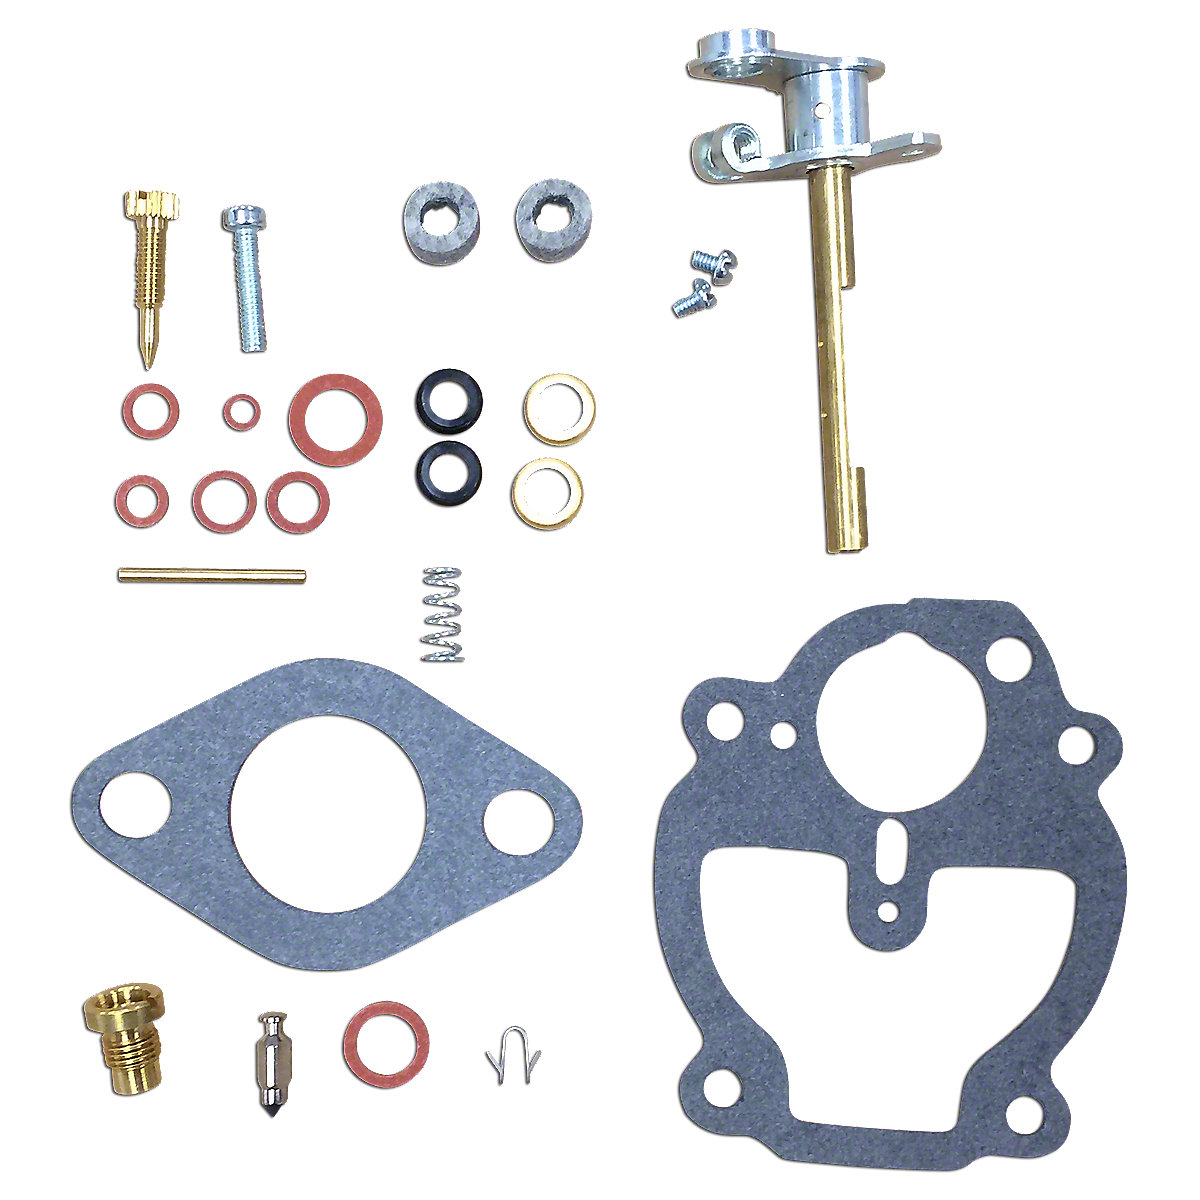 ABC145 Basic Zenith Carburetor Repair Kit